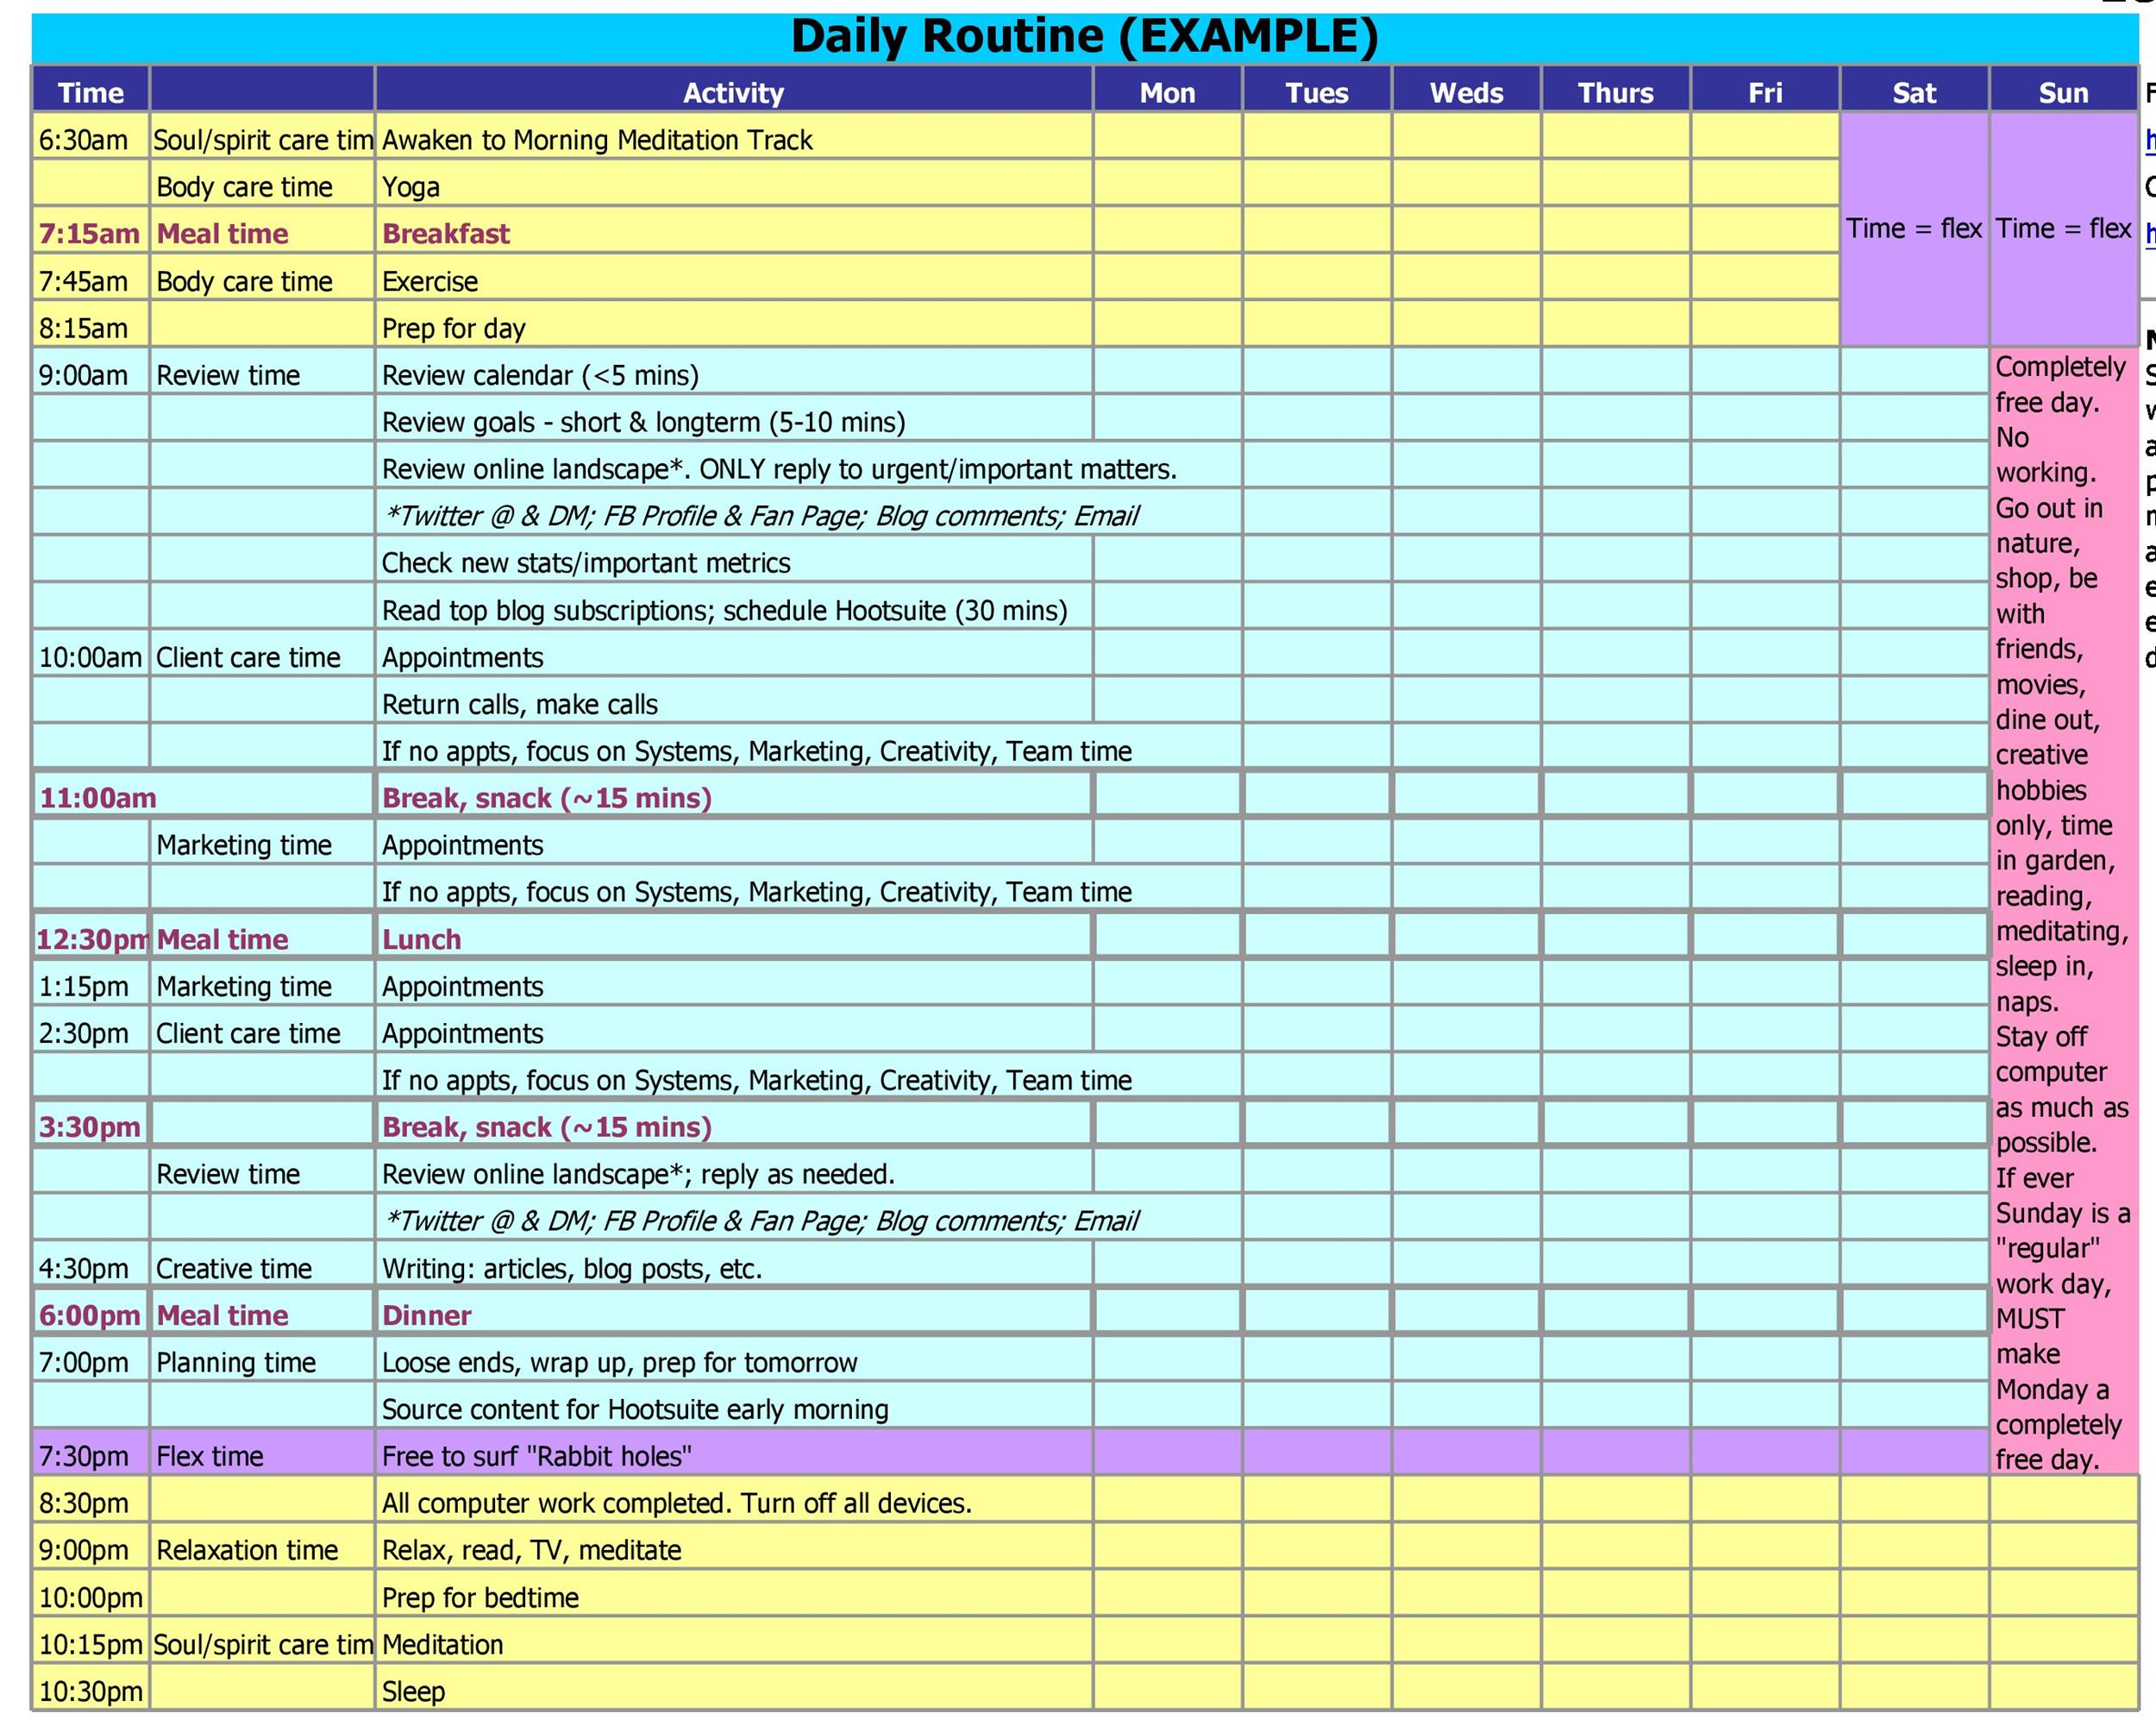 17 Perfect Daily Work Schedule Templates - Template Lab - daily routine template